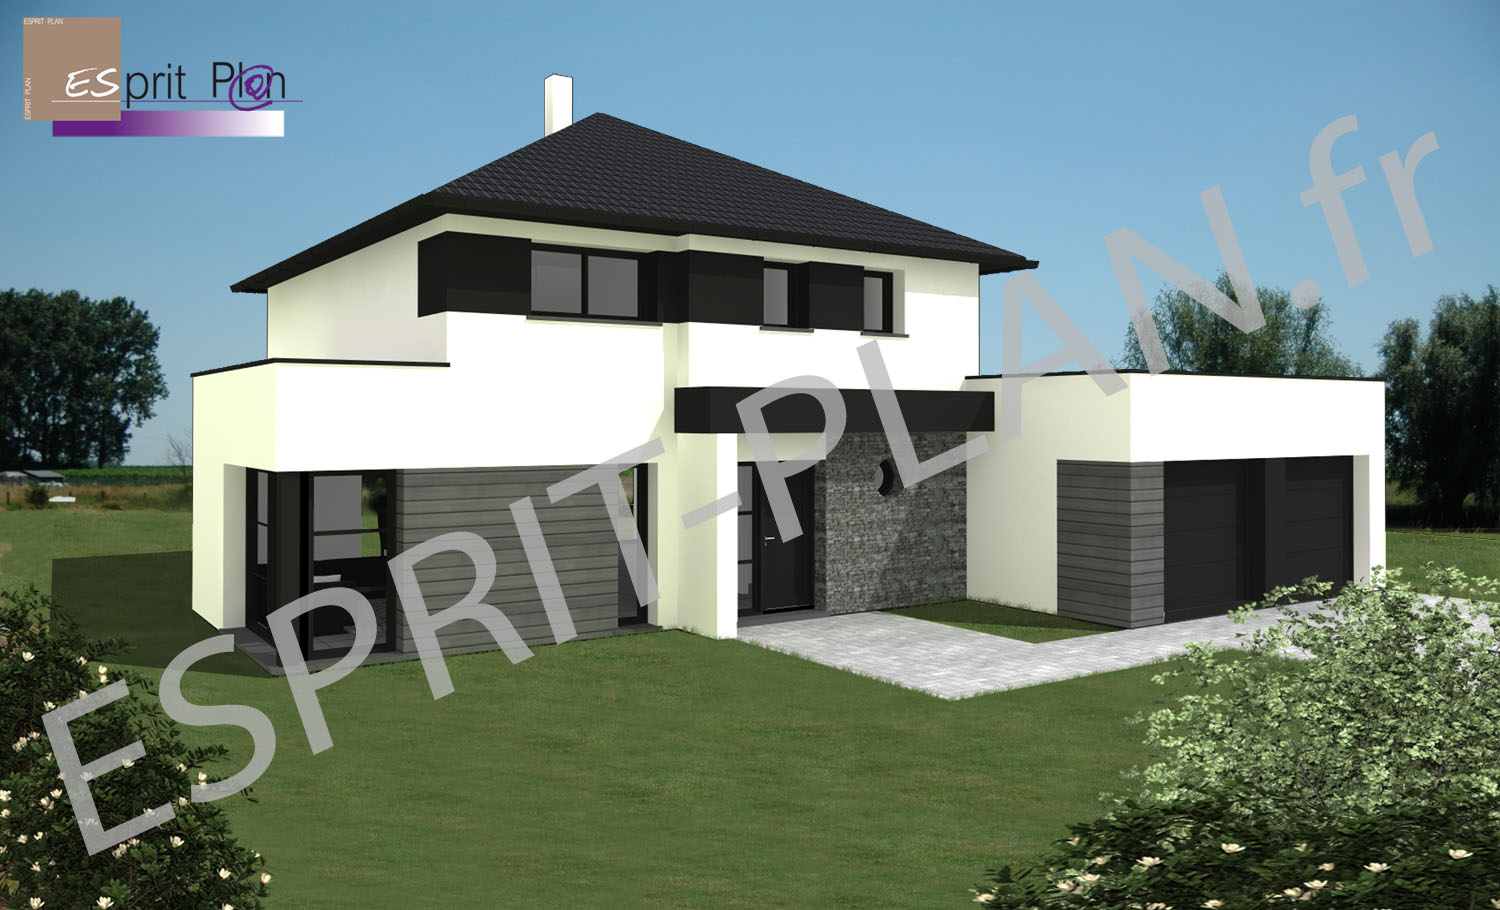 Avant projet maison extensions renovations sur arras for Style de maison moderne plain pied